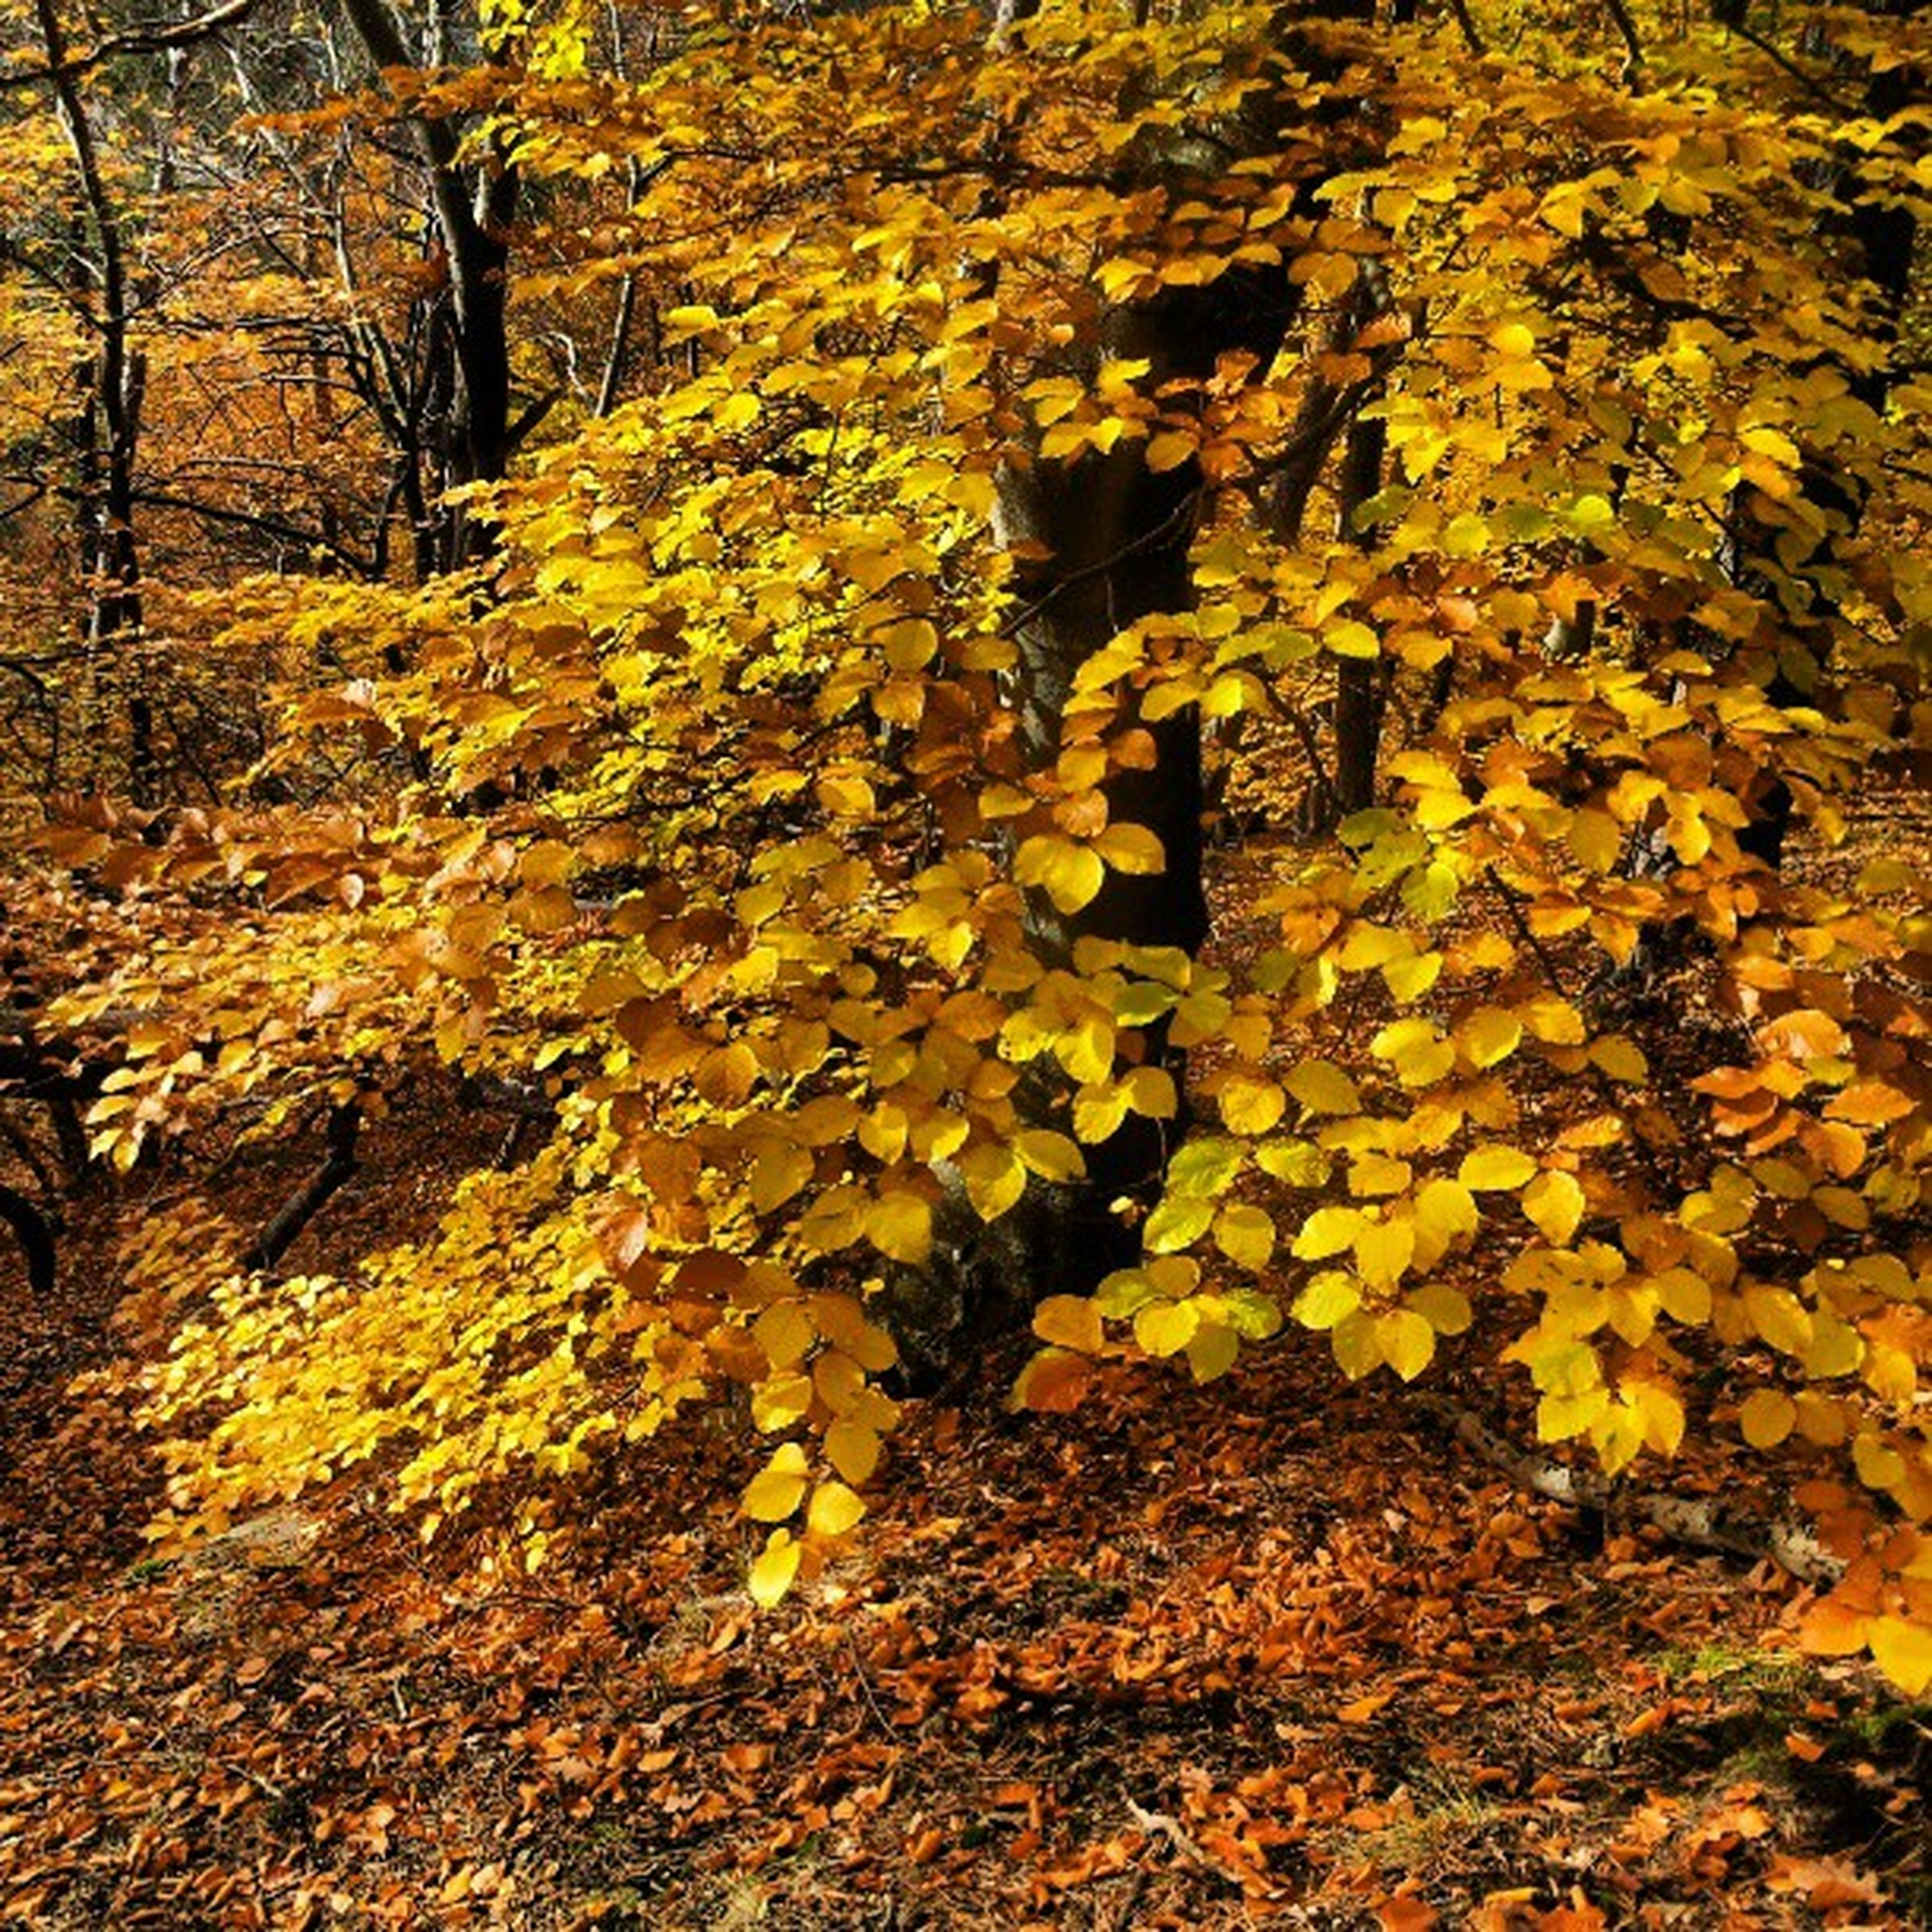 autumn, tree, change, yellow, leaf, season, tranquility, nature, branch, growth, beauty in nature, forest, tree trunk, tranquil scene, fallen, scenics, orange color, day, outdoors, no people